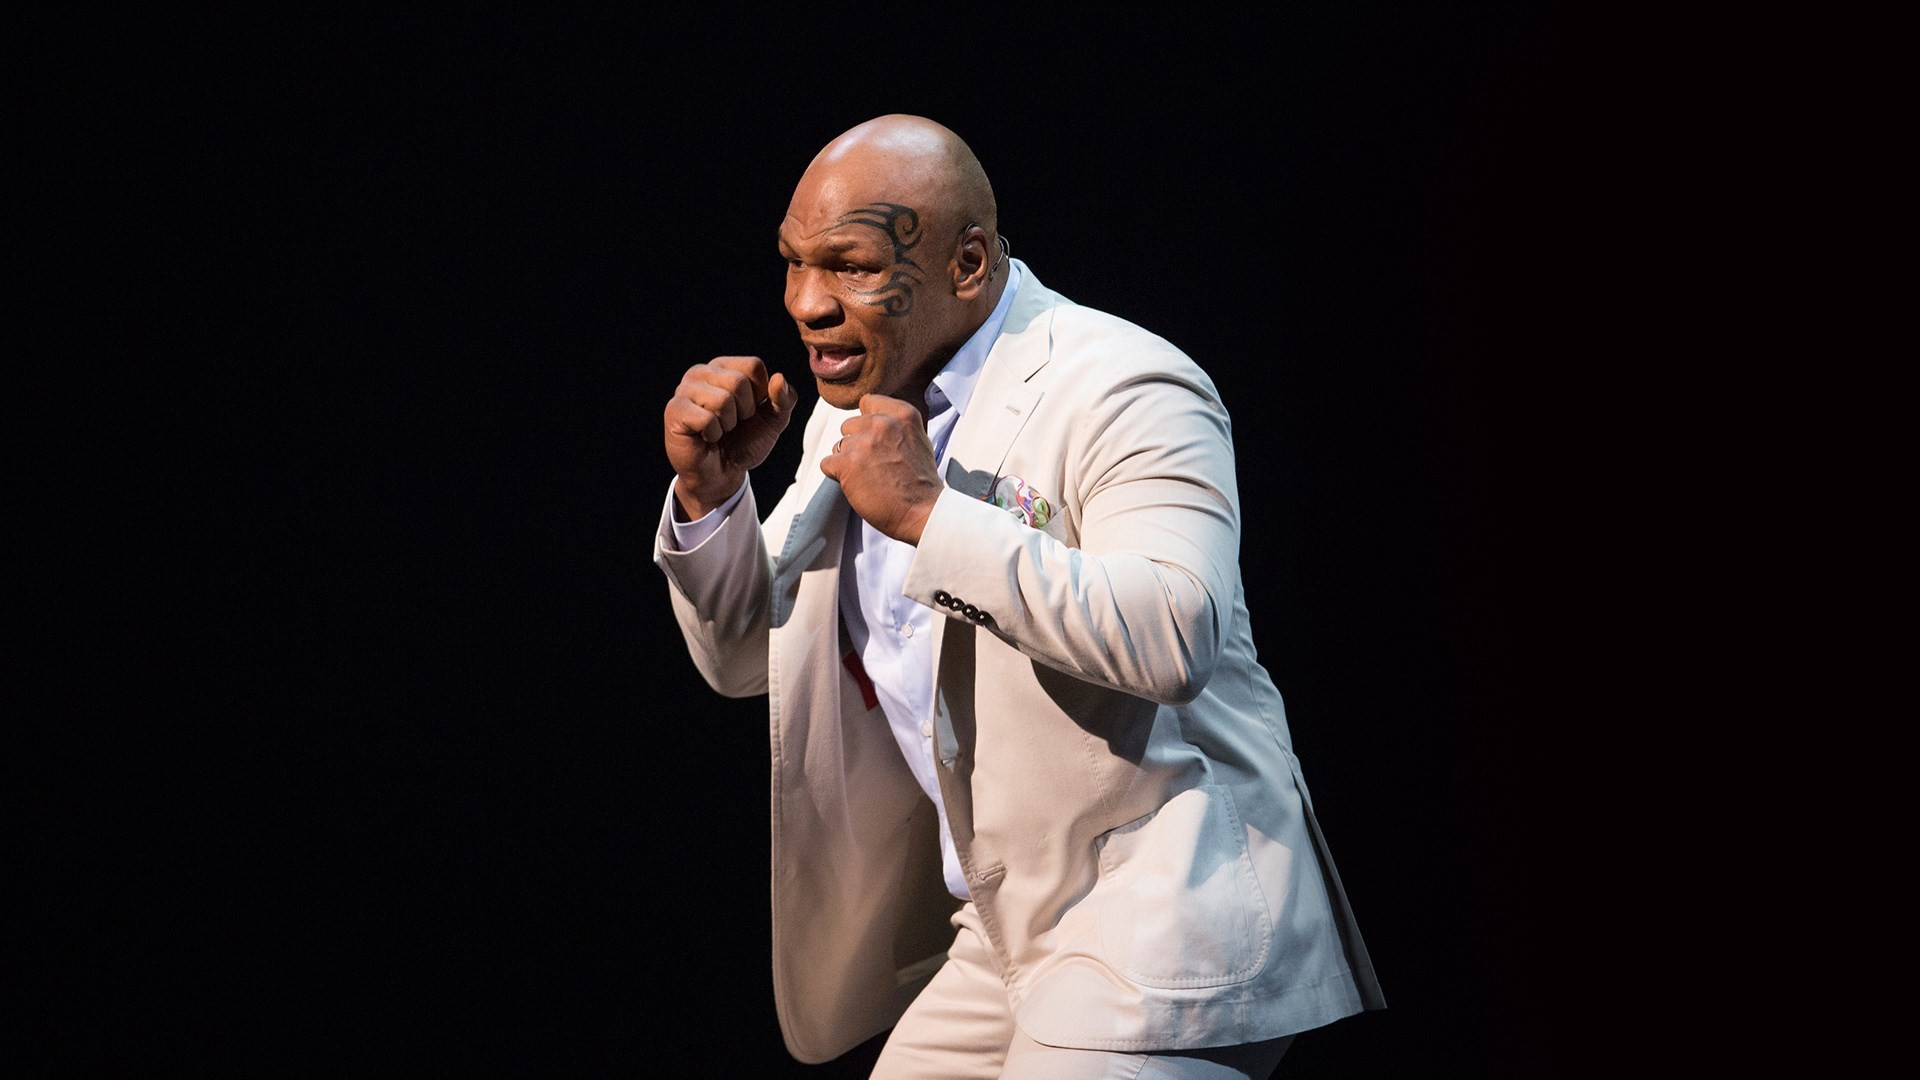 1920x1080 2016-06-25 - High Resolution Wallpapers mike tyson image - #111059